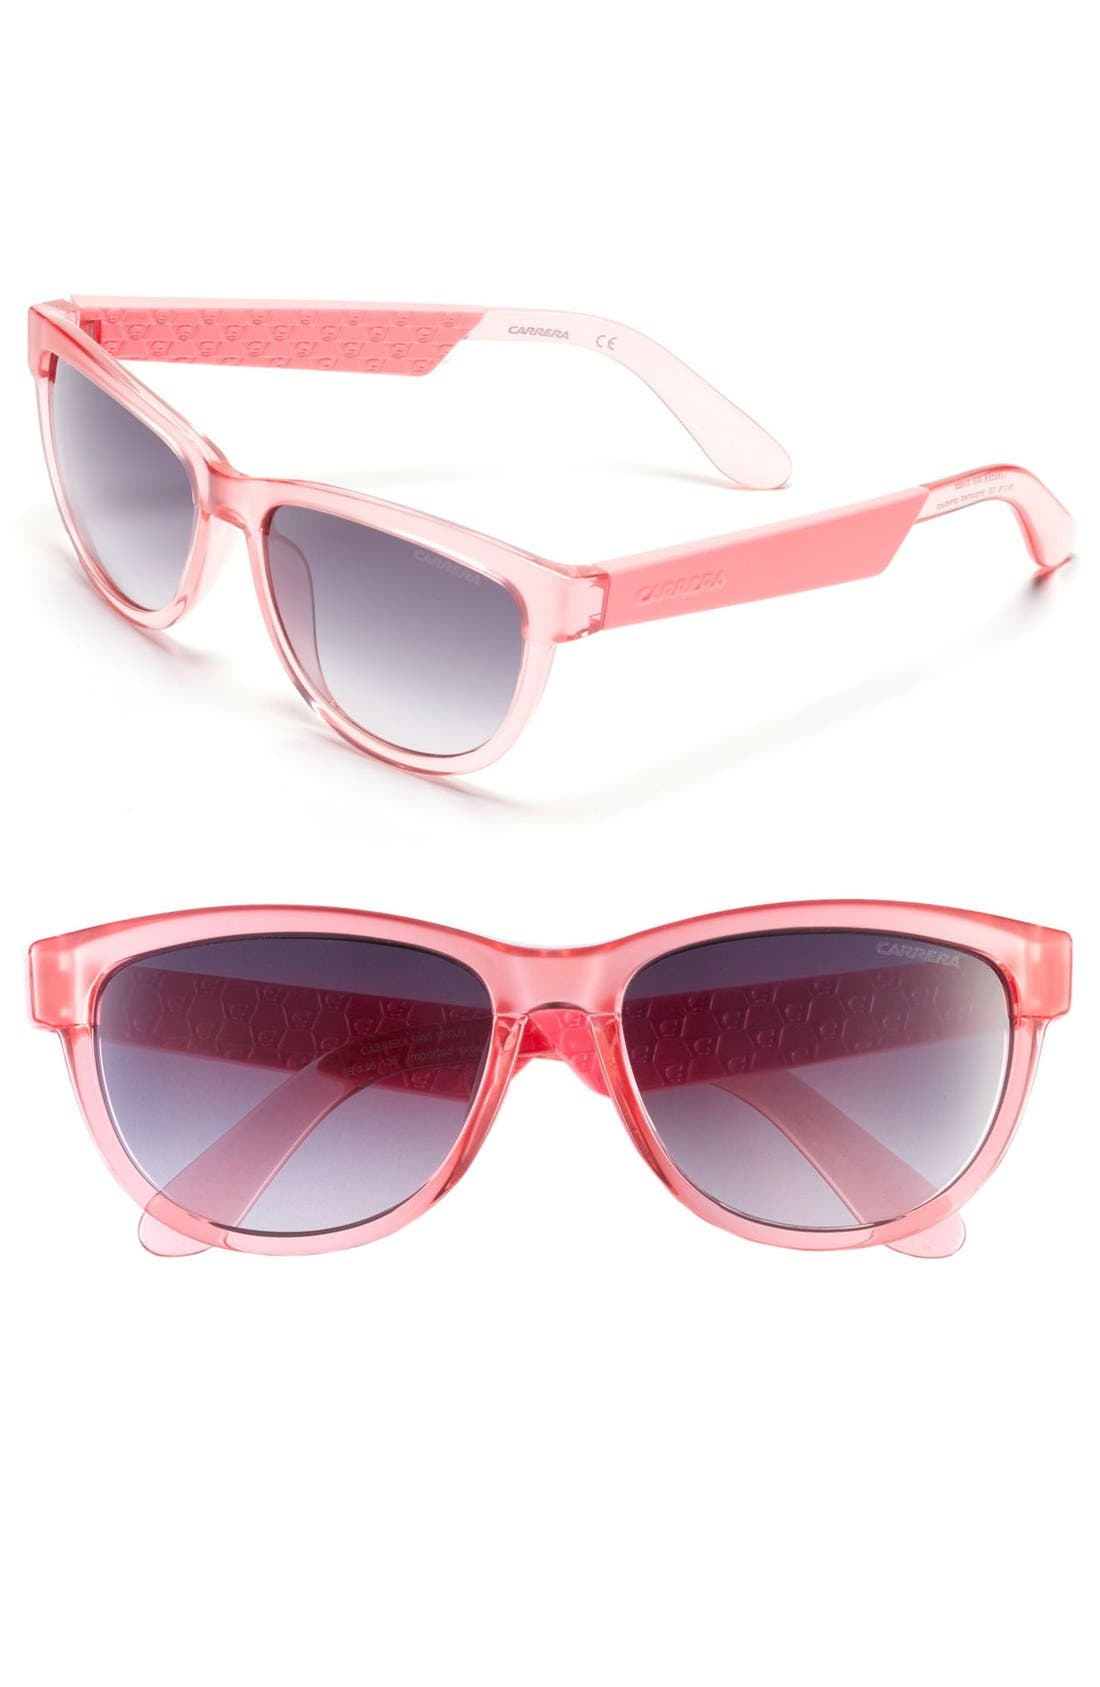 55mm Sunglasses,                         Main,                         color, Pink